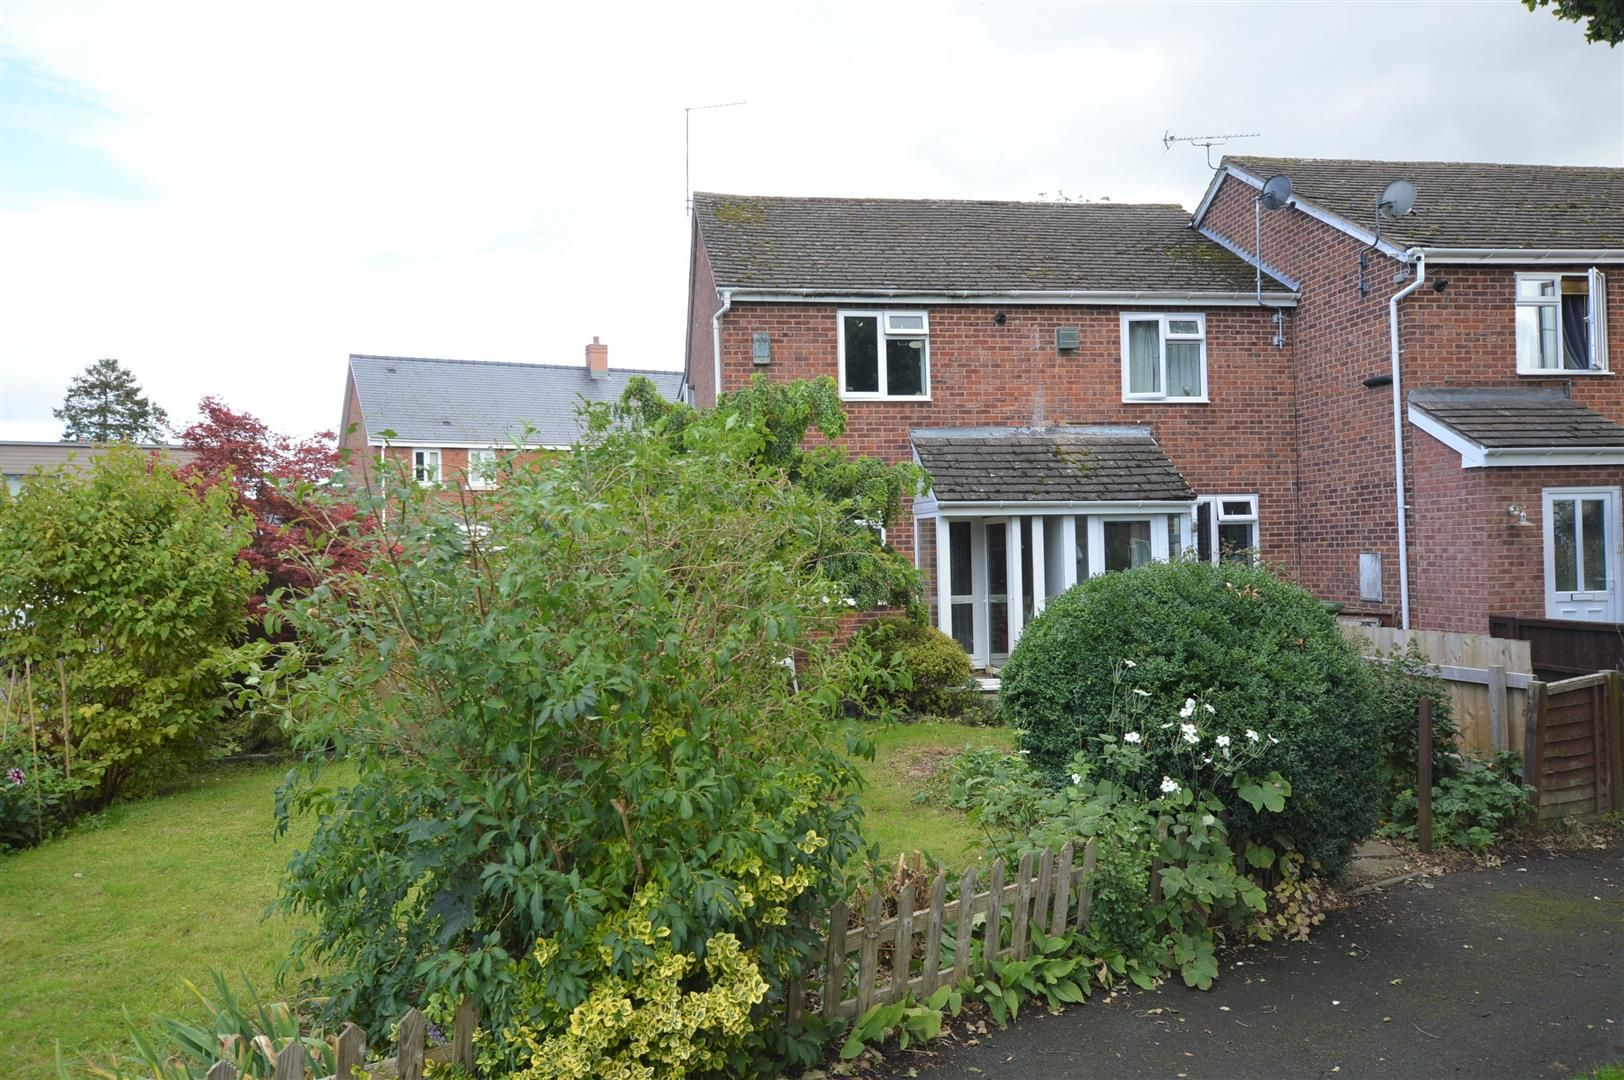 2 bed end of terrace for sale in Leominster, HR6